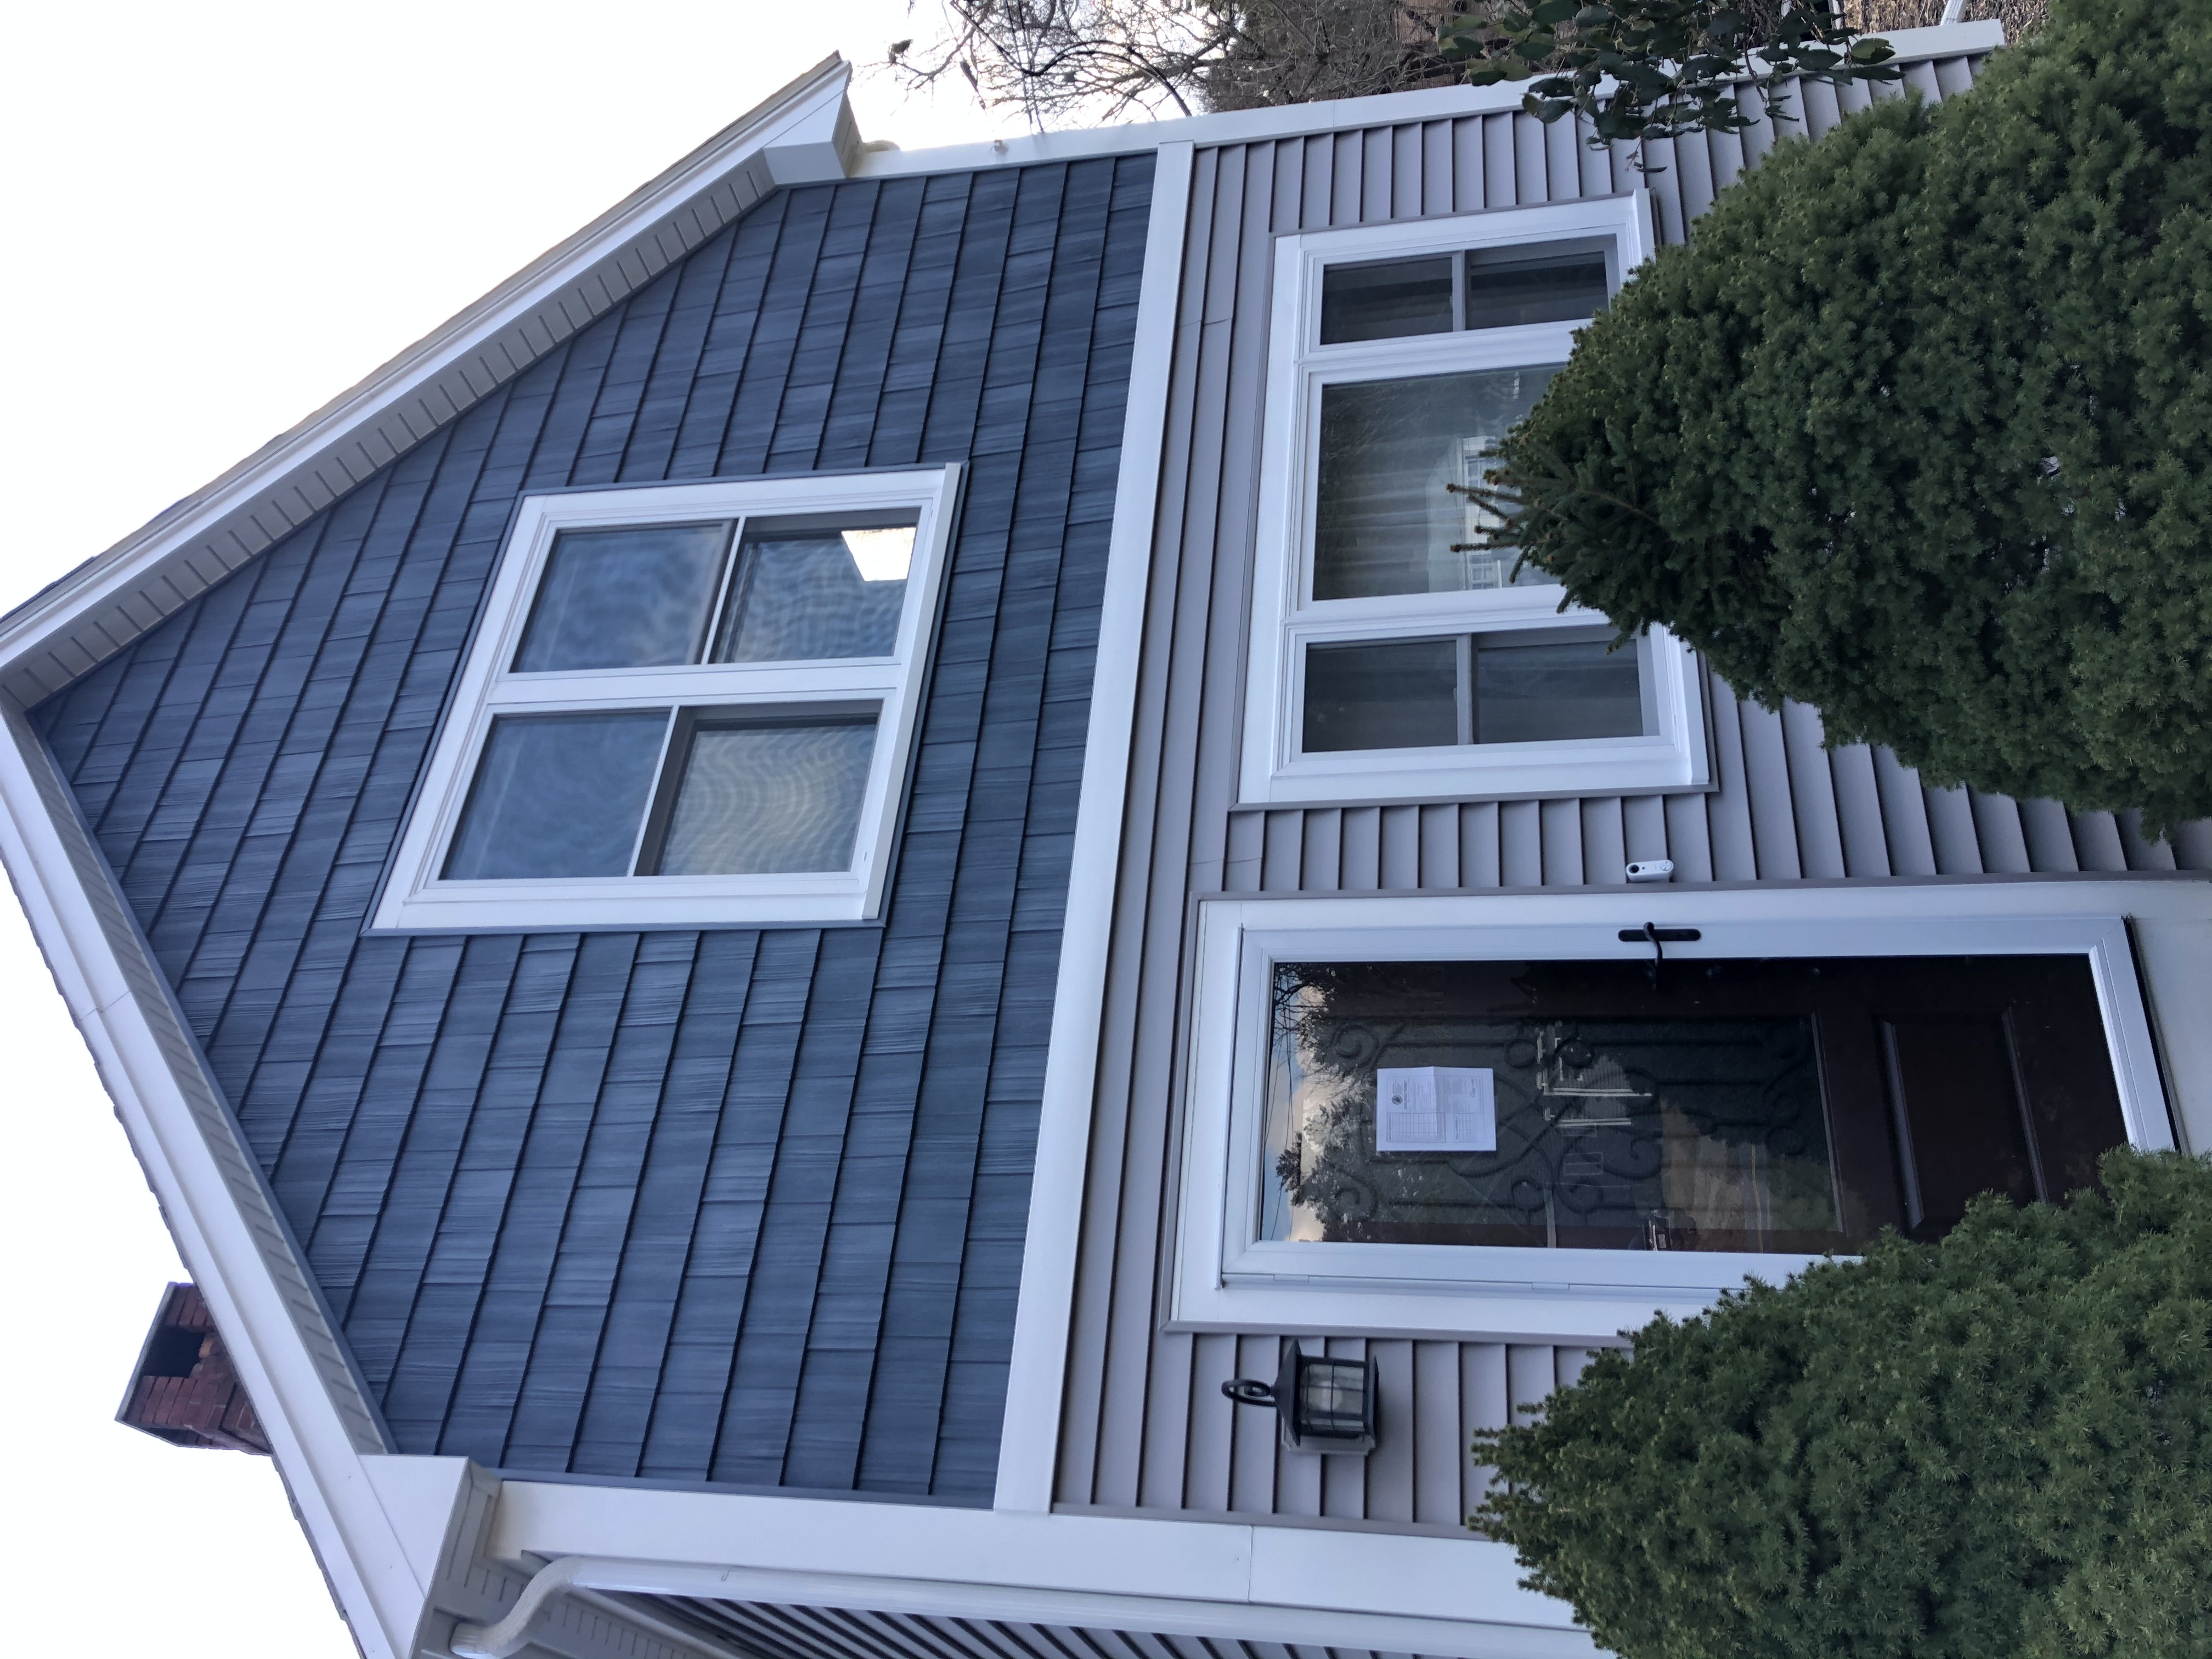 Simonton Windows & New Vinyl siding